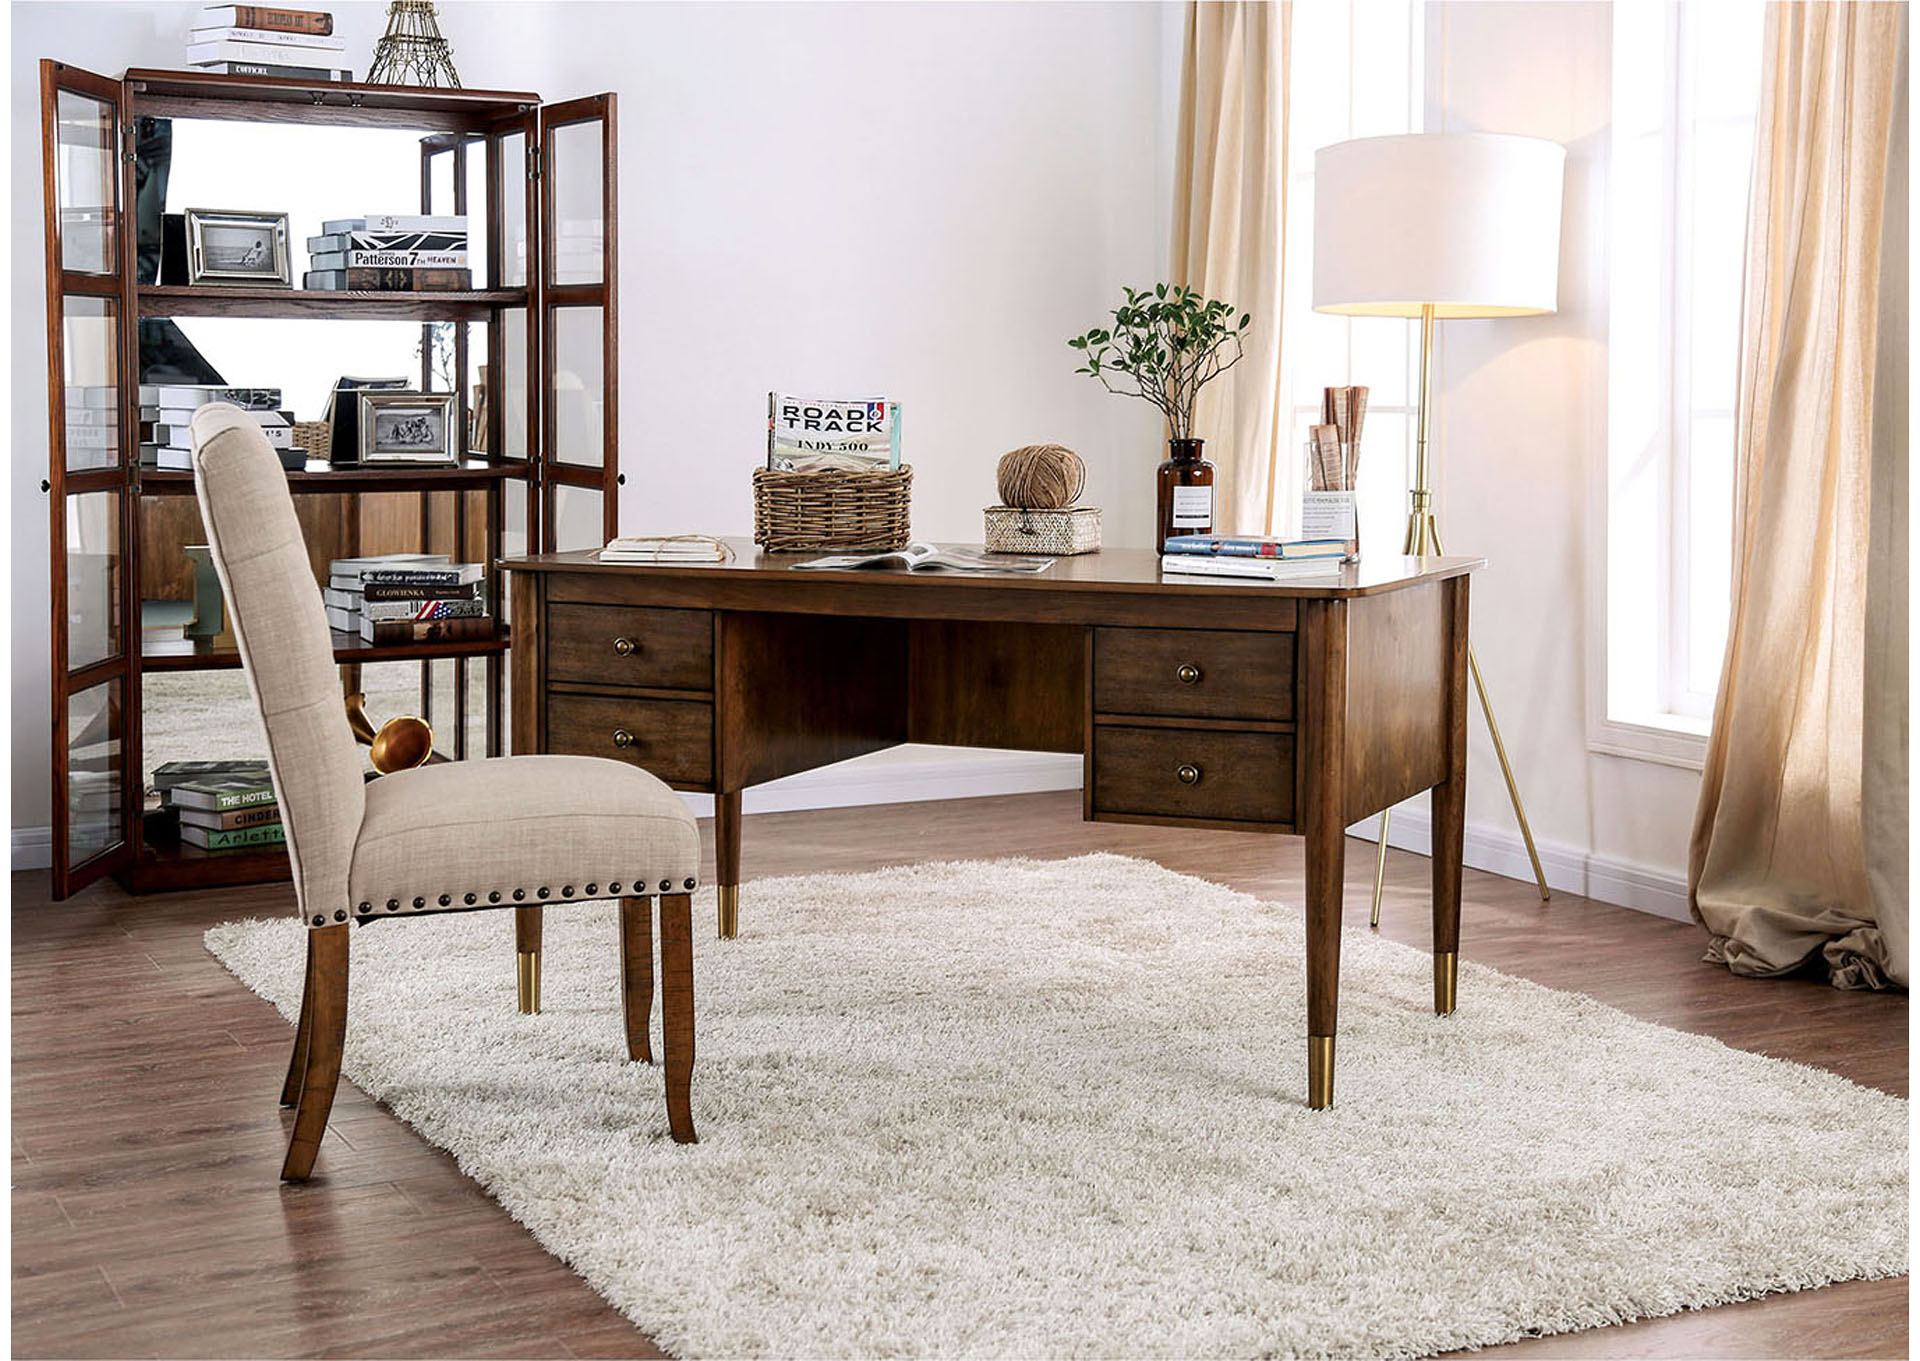 Maddy S Home Reliance Antique Oak Desk